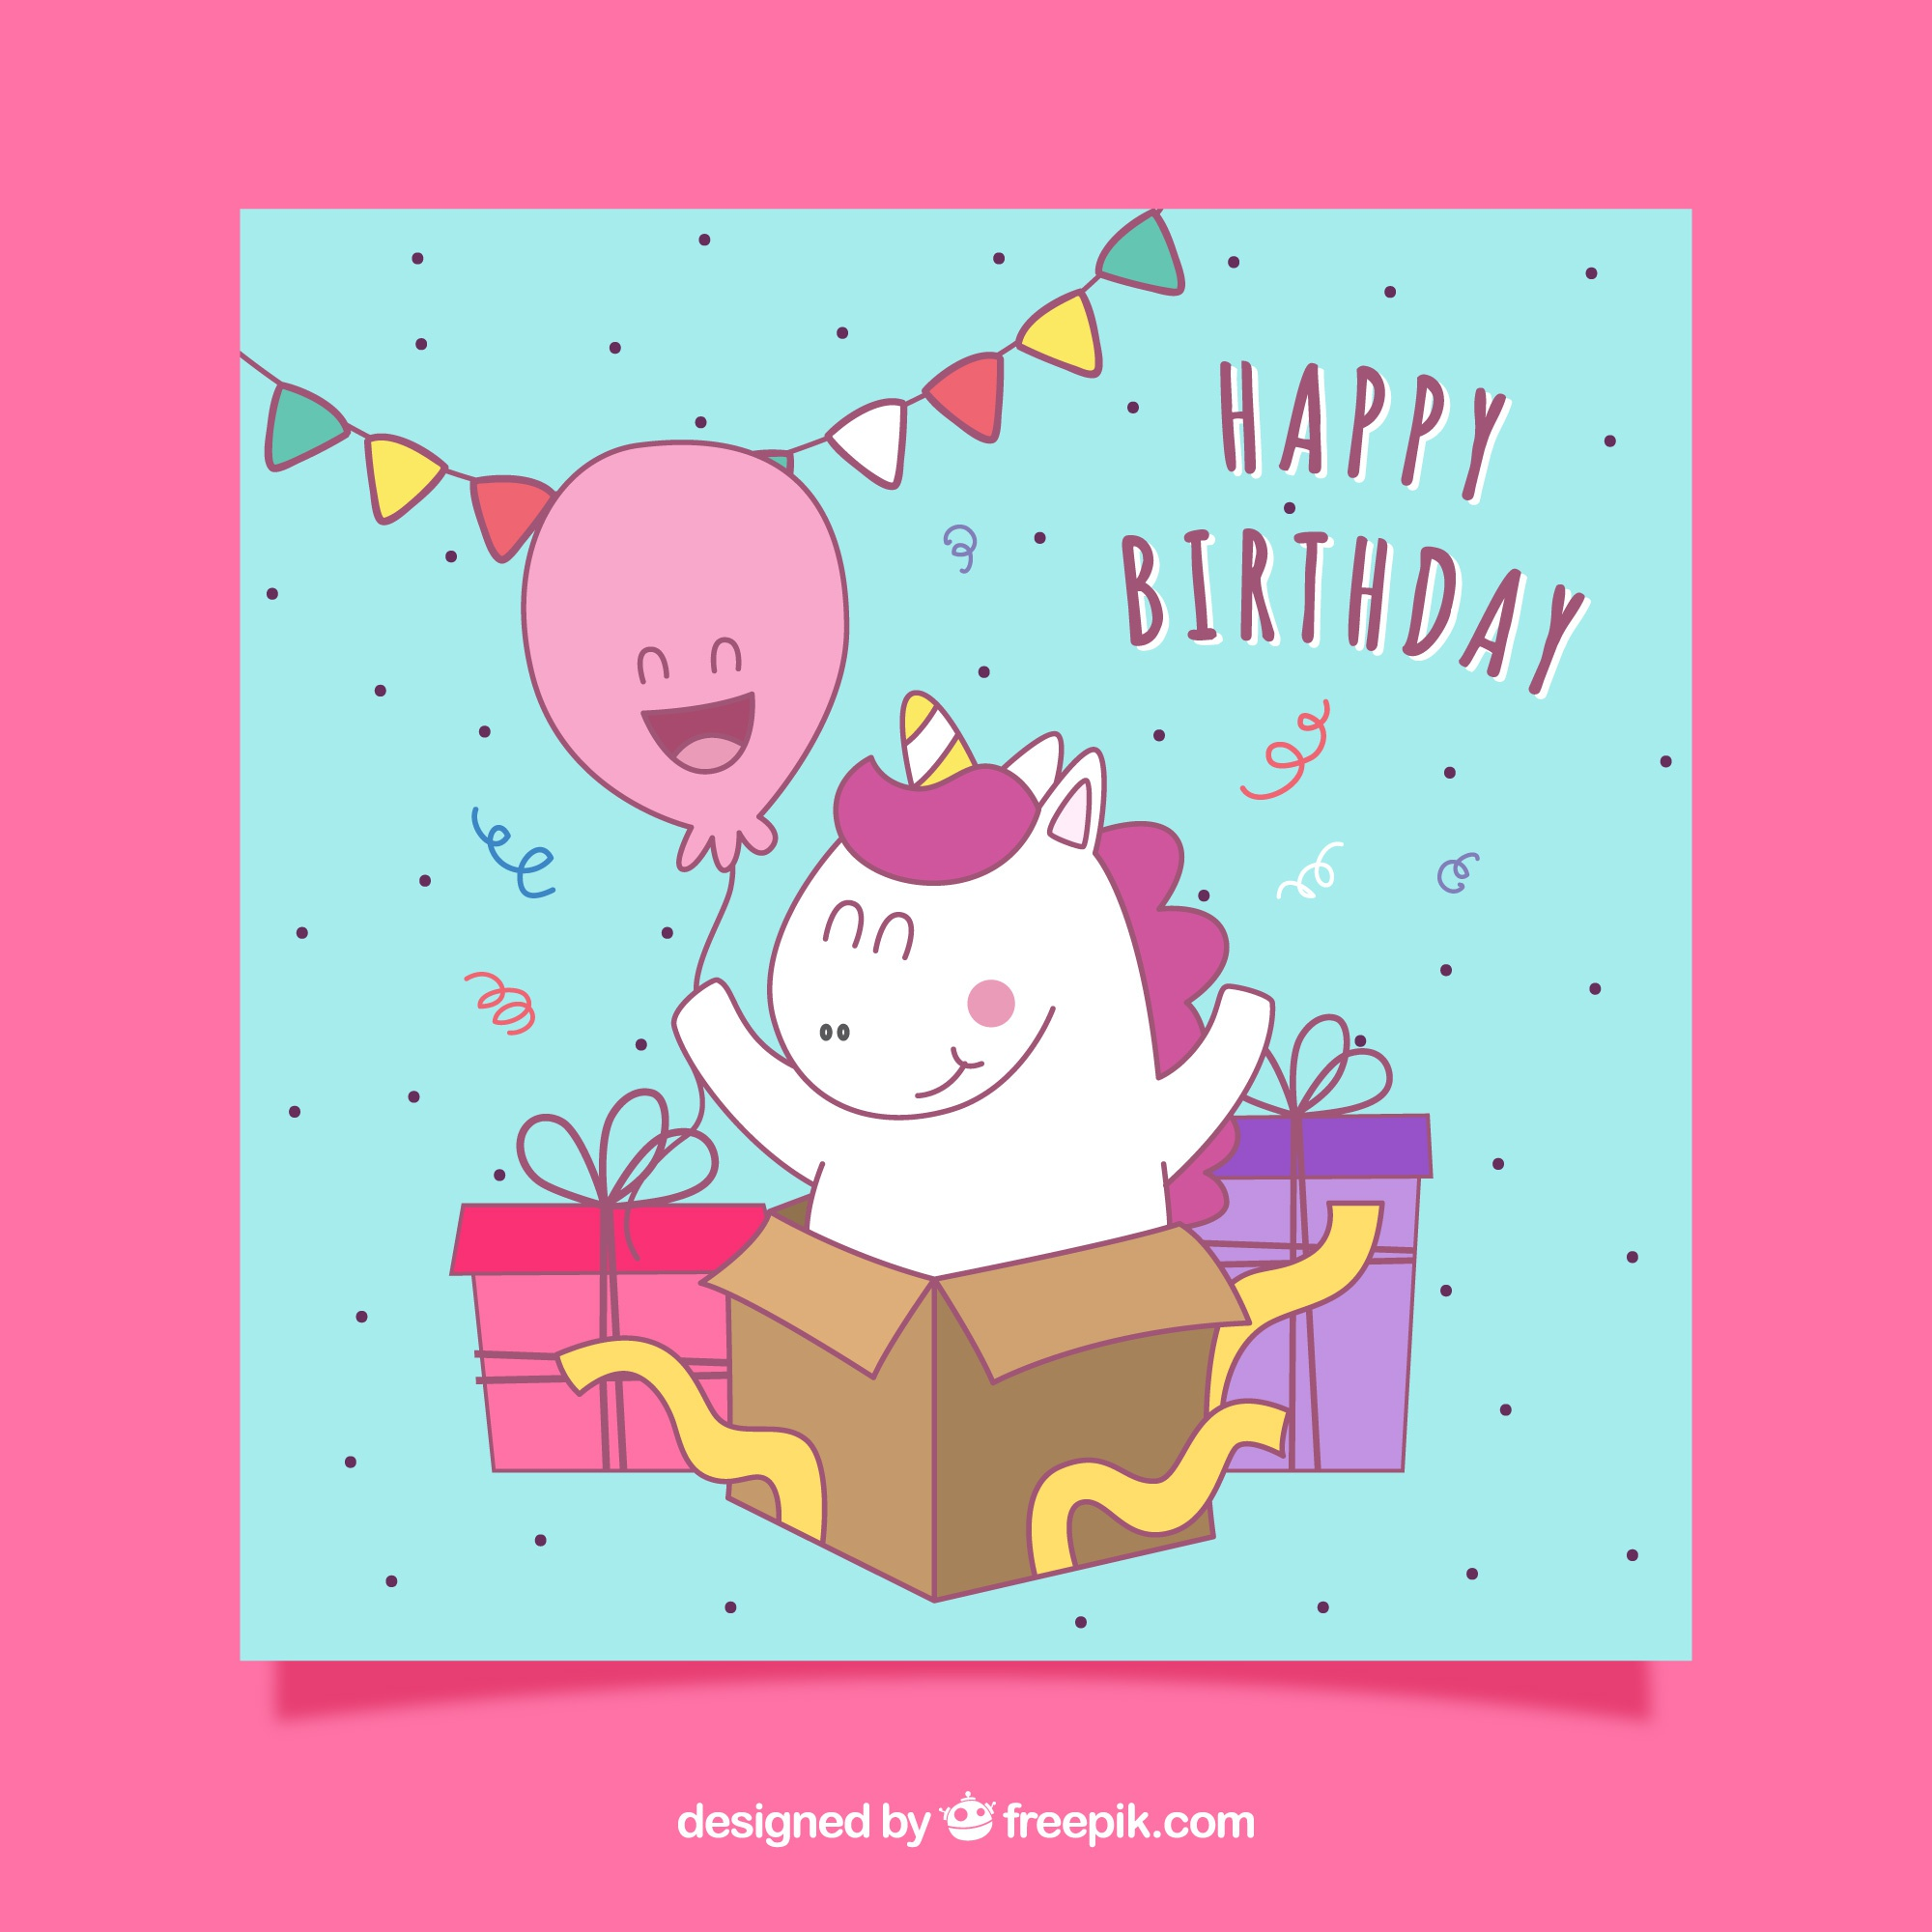 Birthday card with stripes and a funny hand-drawn unicorn